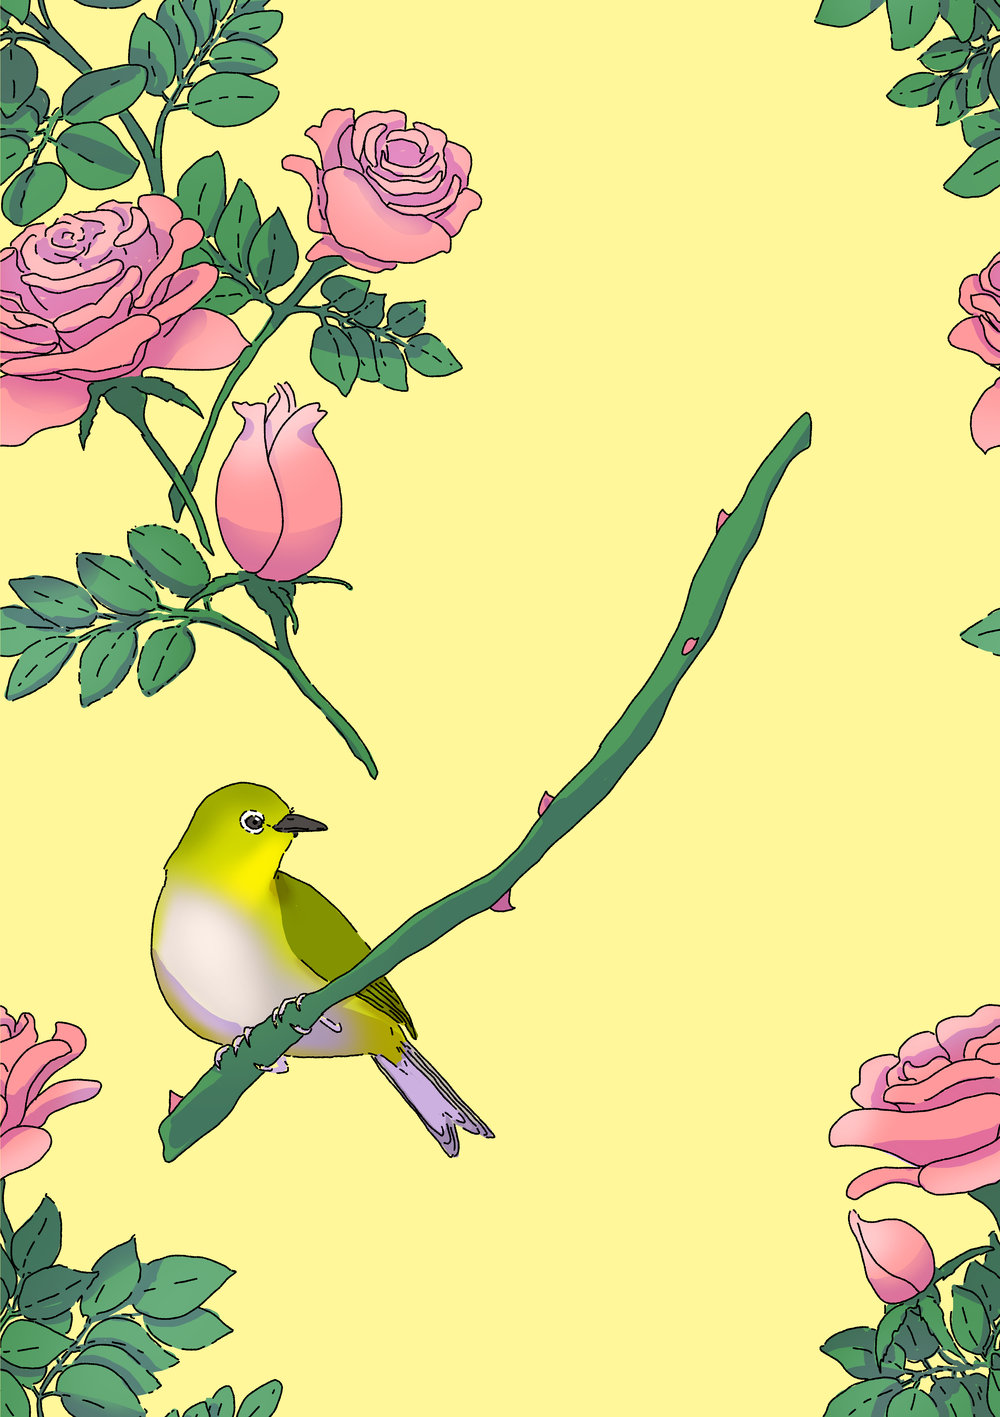 Japanese White-Eye and Rose pattern